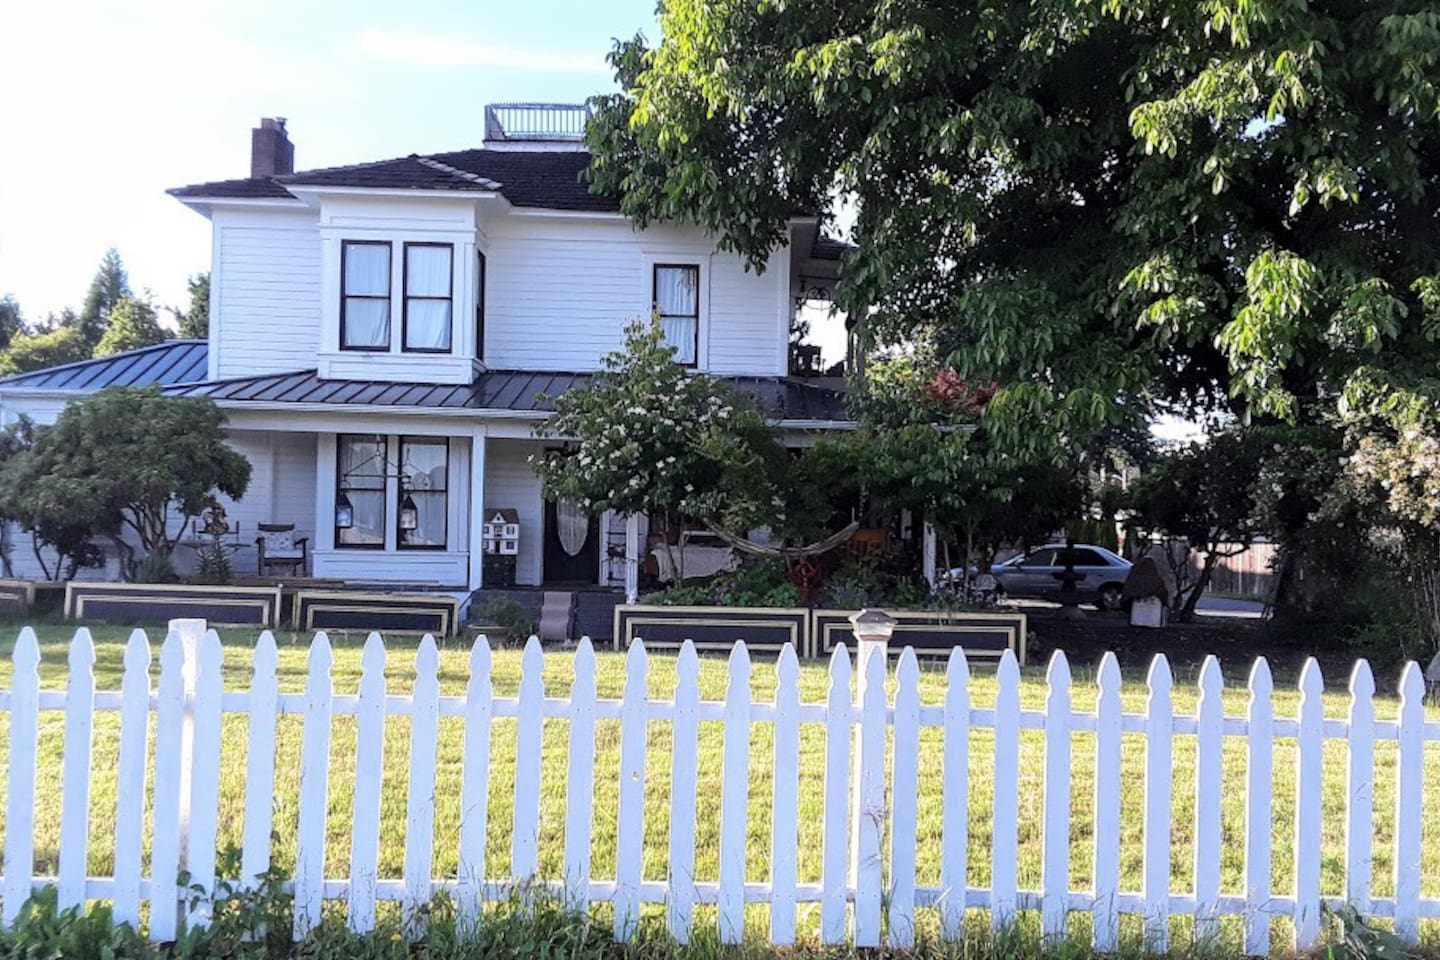 Minerva Healy and her Family, moved in 1909, when she was 6 years old. She lived here for the next 88 years. This helped keep the house quite original. The owner has attempted to integrate it's history and to make this a very special place to stay.